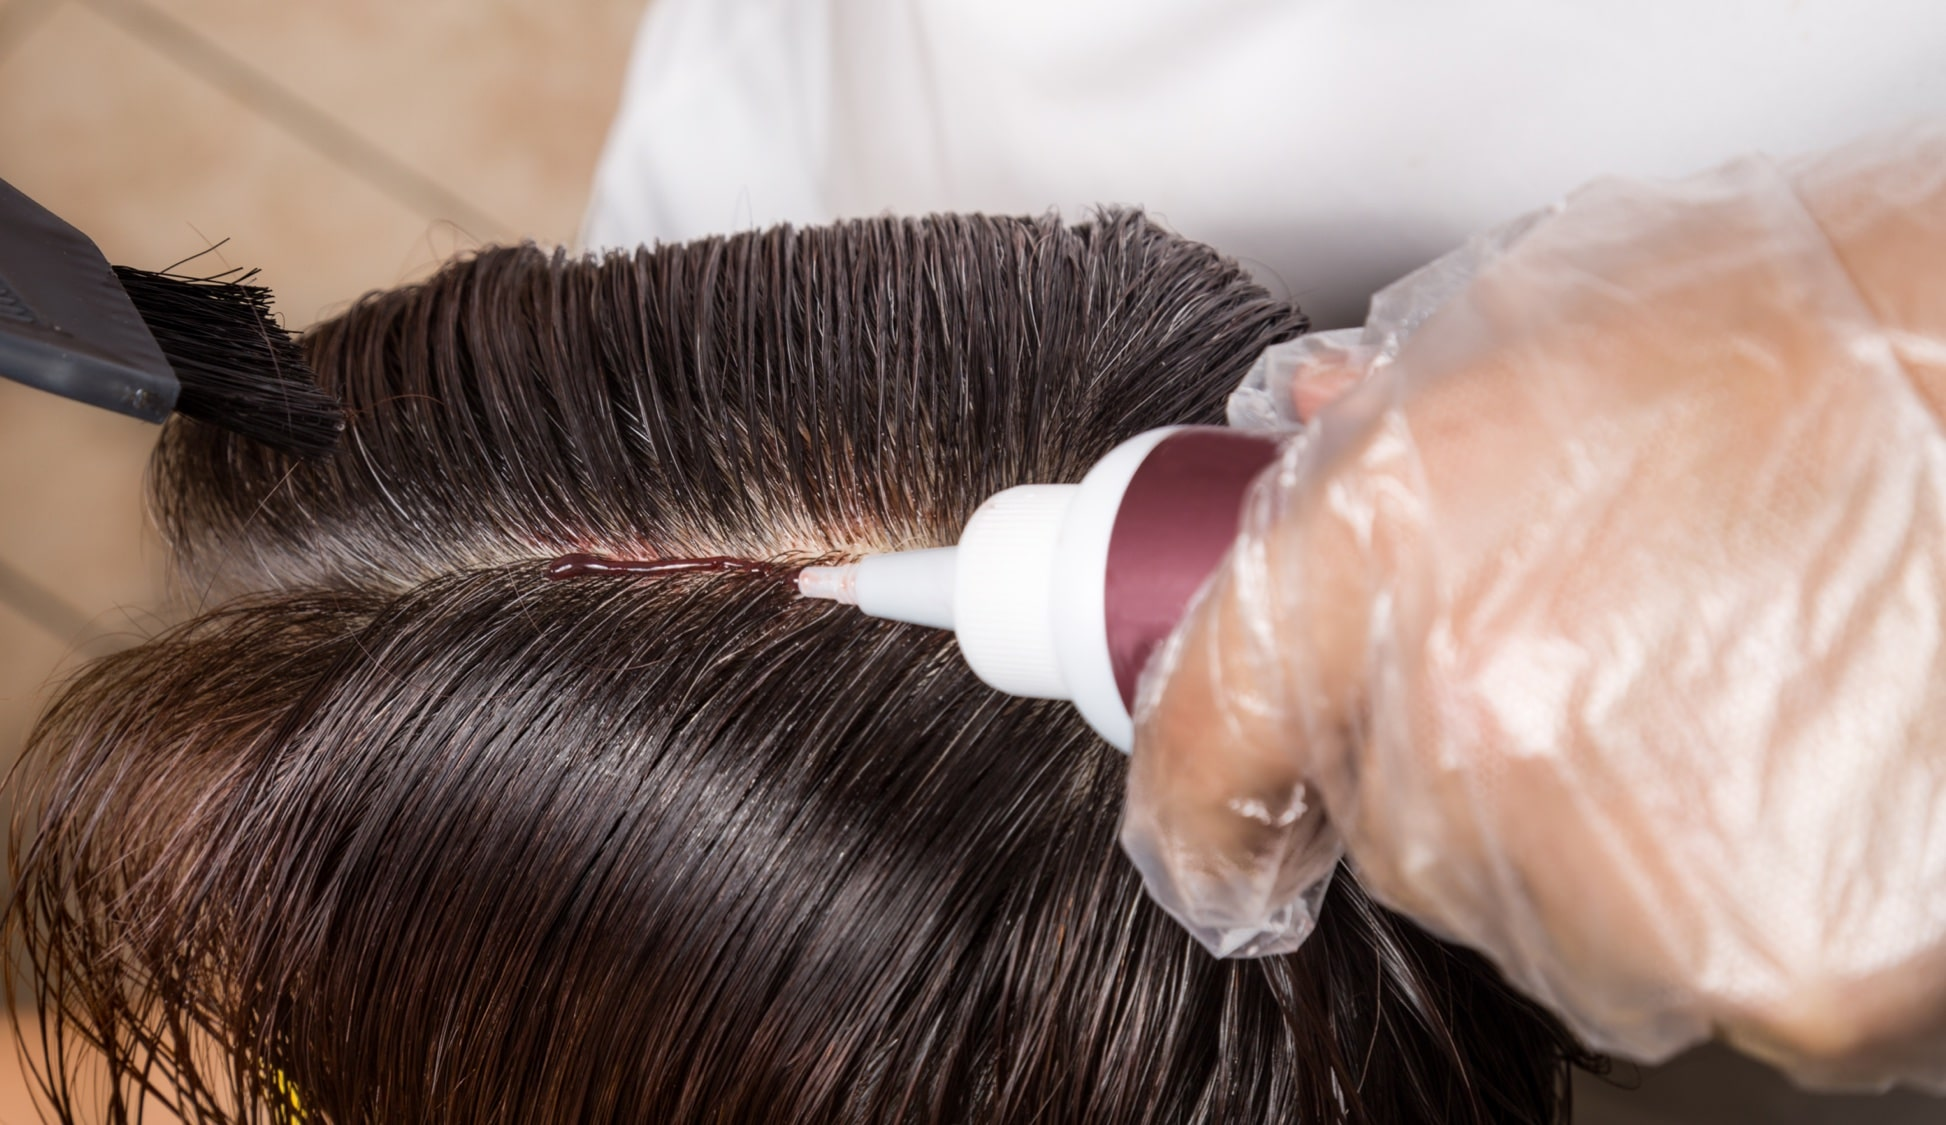 Does Dyeing Your Hair Kill Head Lice?